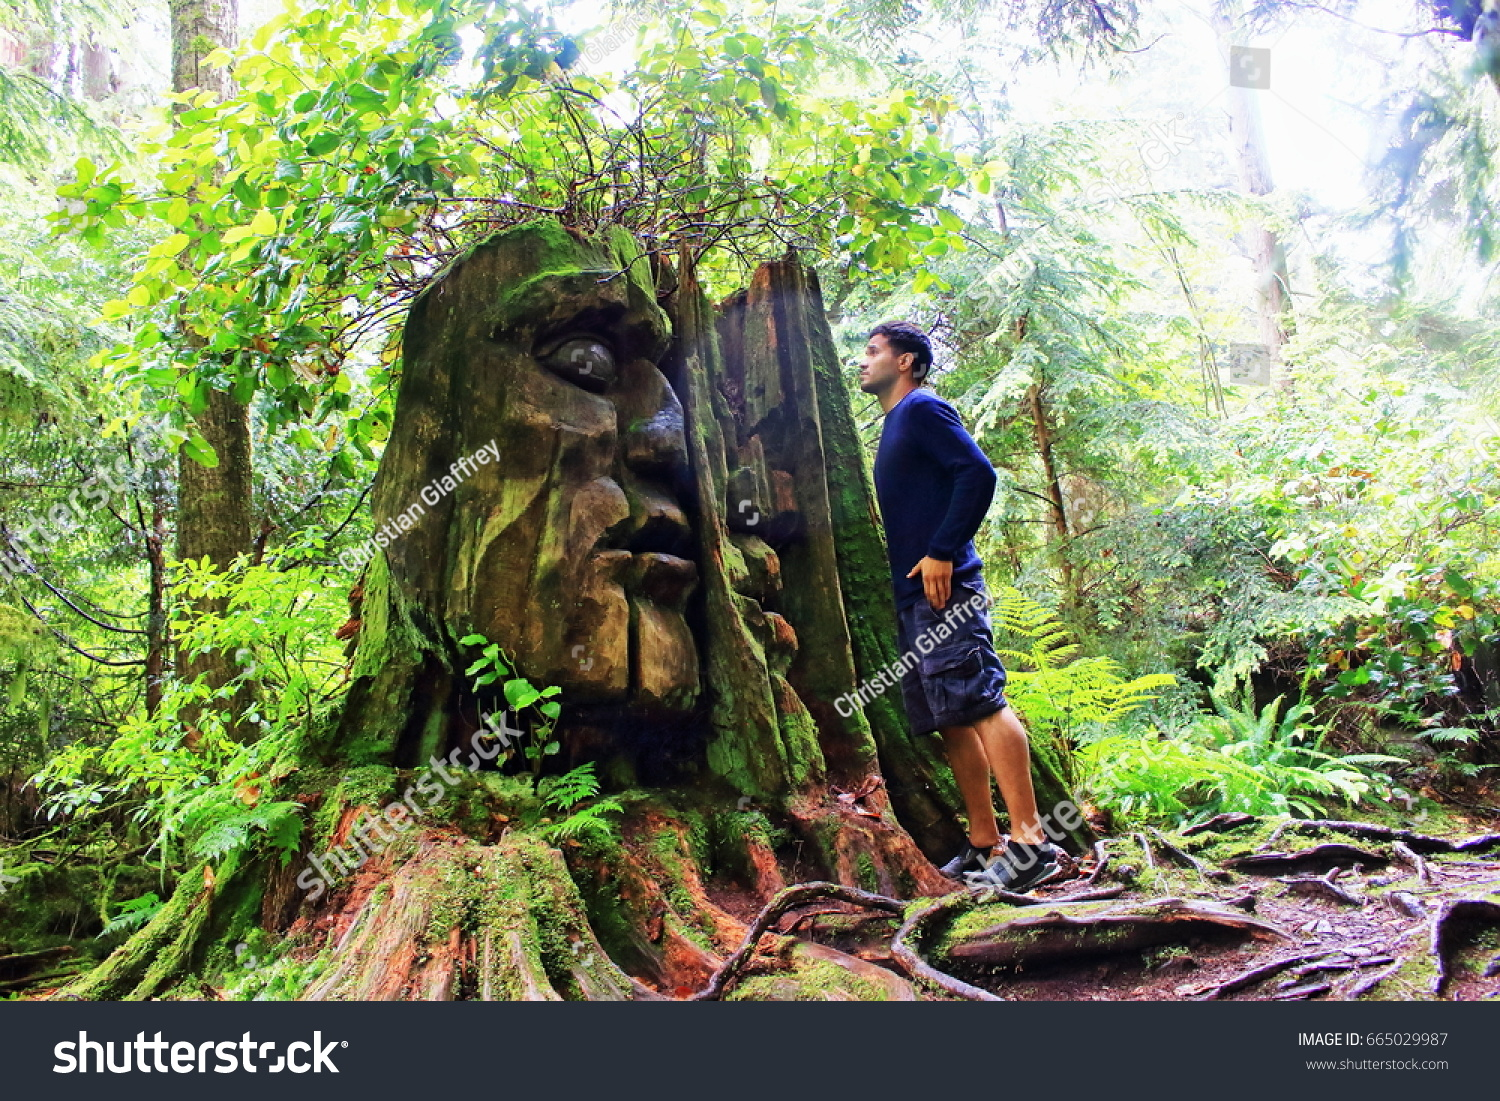 Mutants are the primary enemies of the forest. Natural Ancient Discovery Forest Man Looks Stock Photo Edit Now 665029987